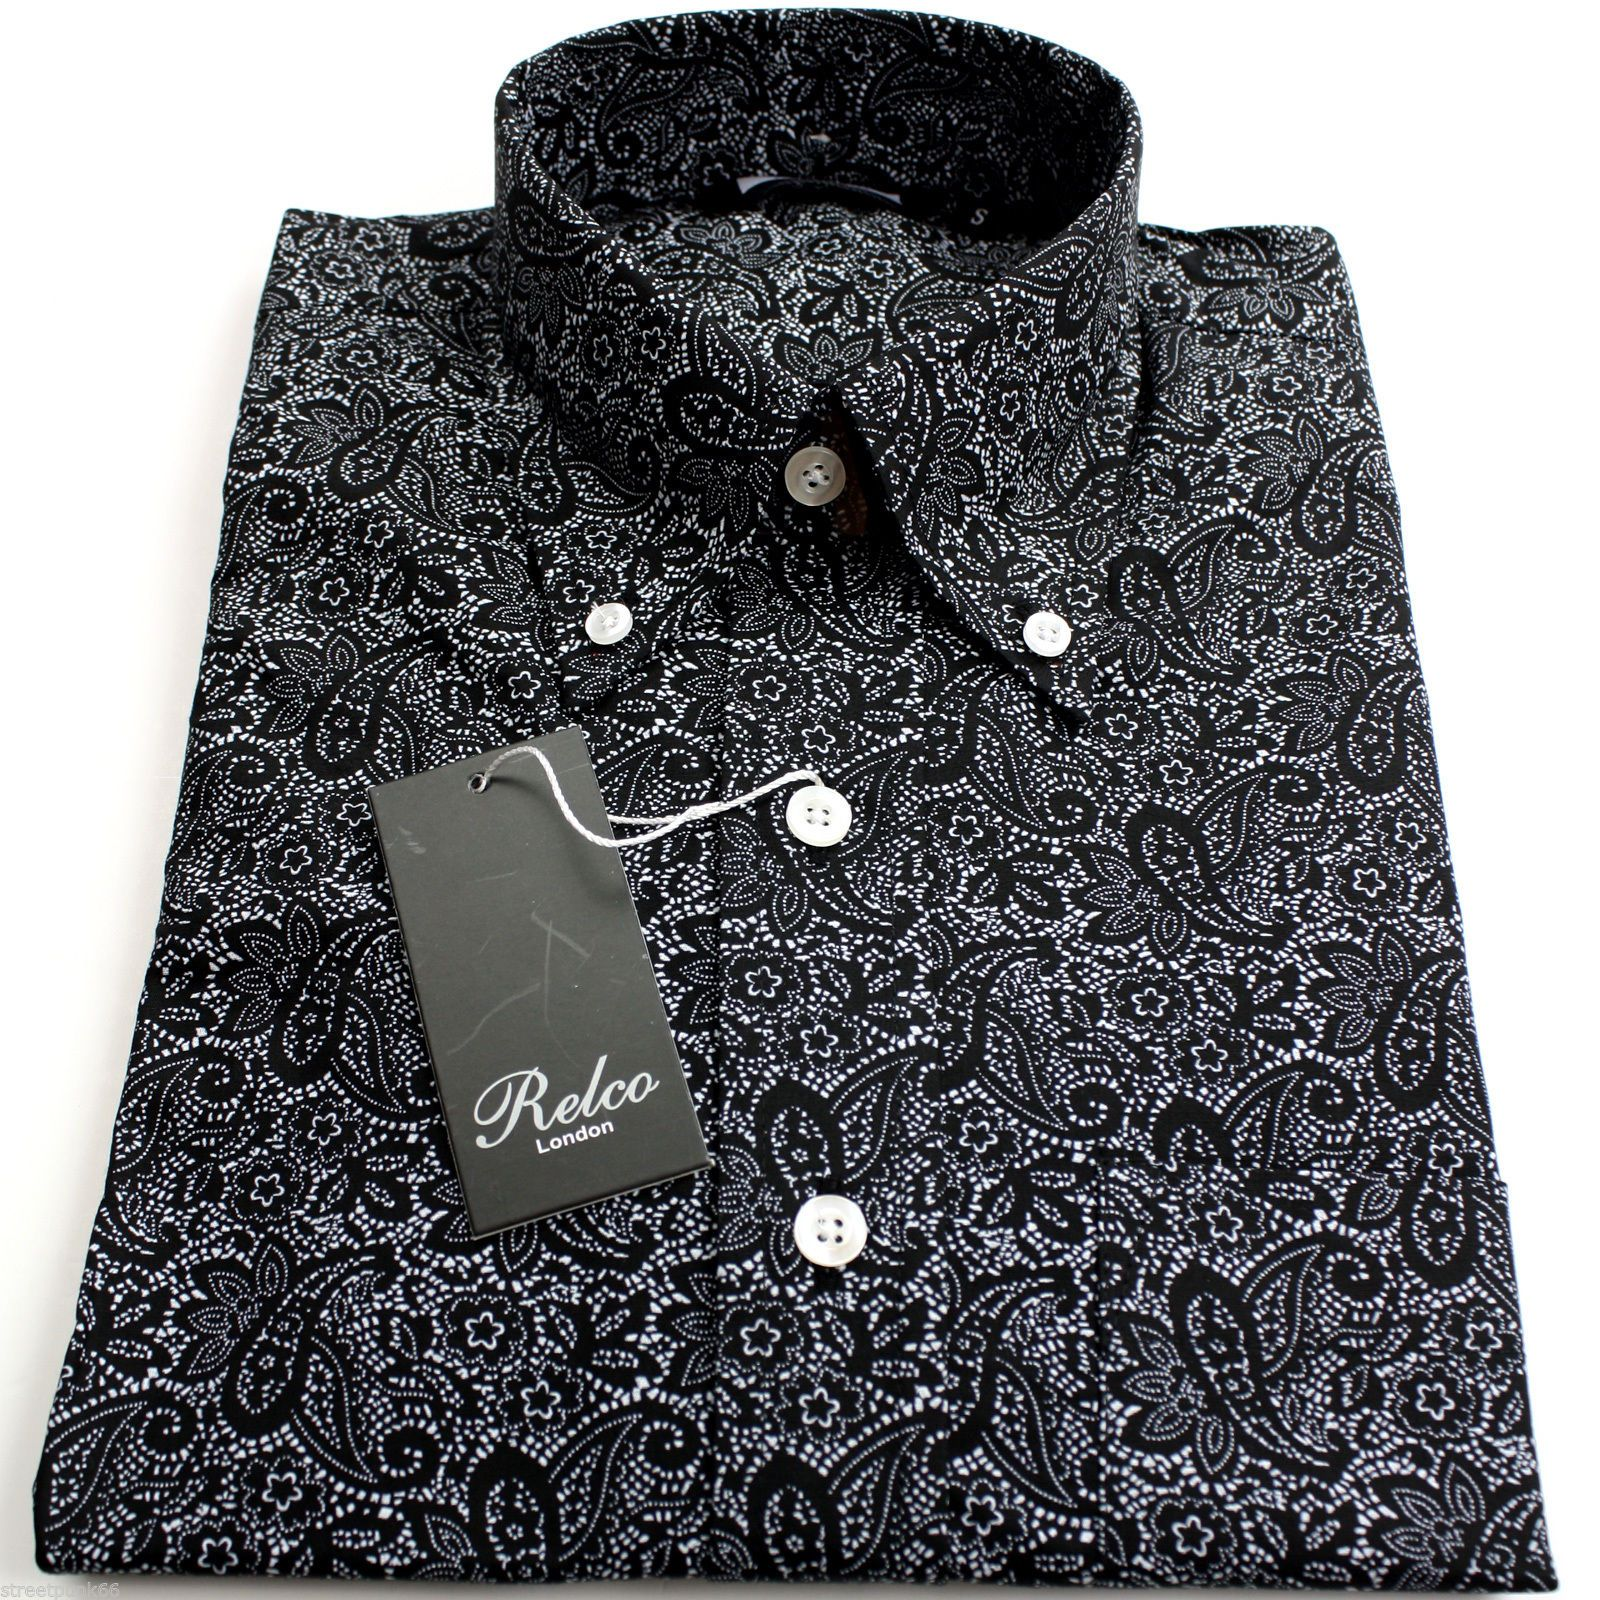 Black Polka Dot Shirt Men